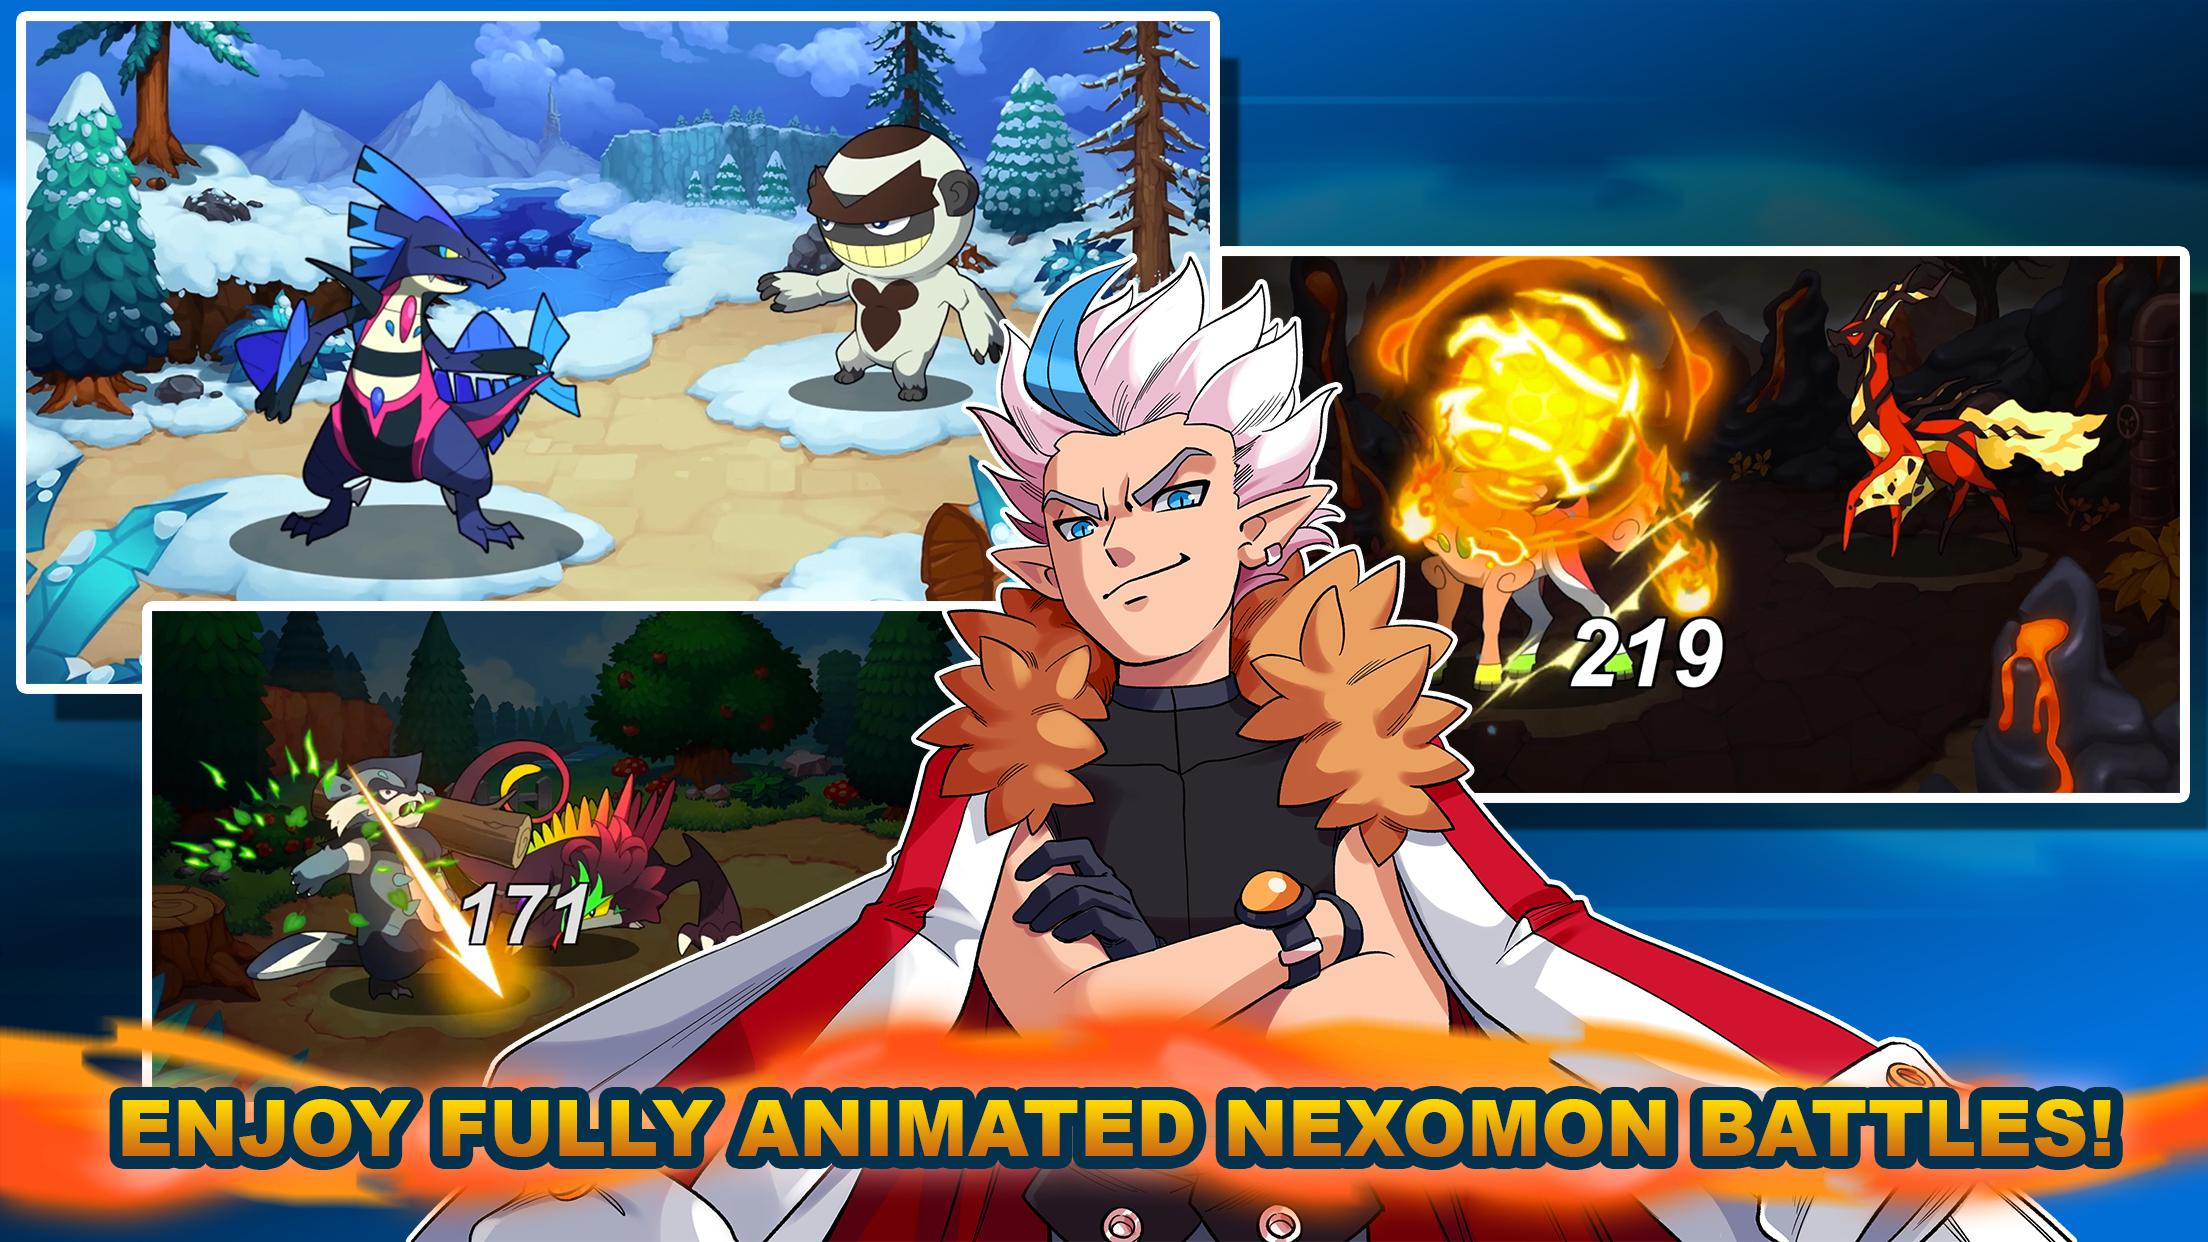 Nexomon for Android - APK Download